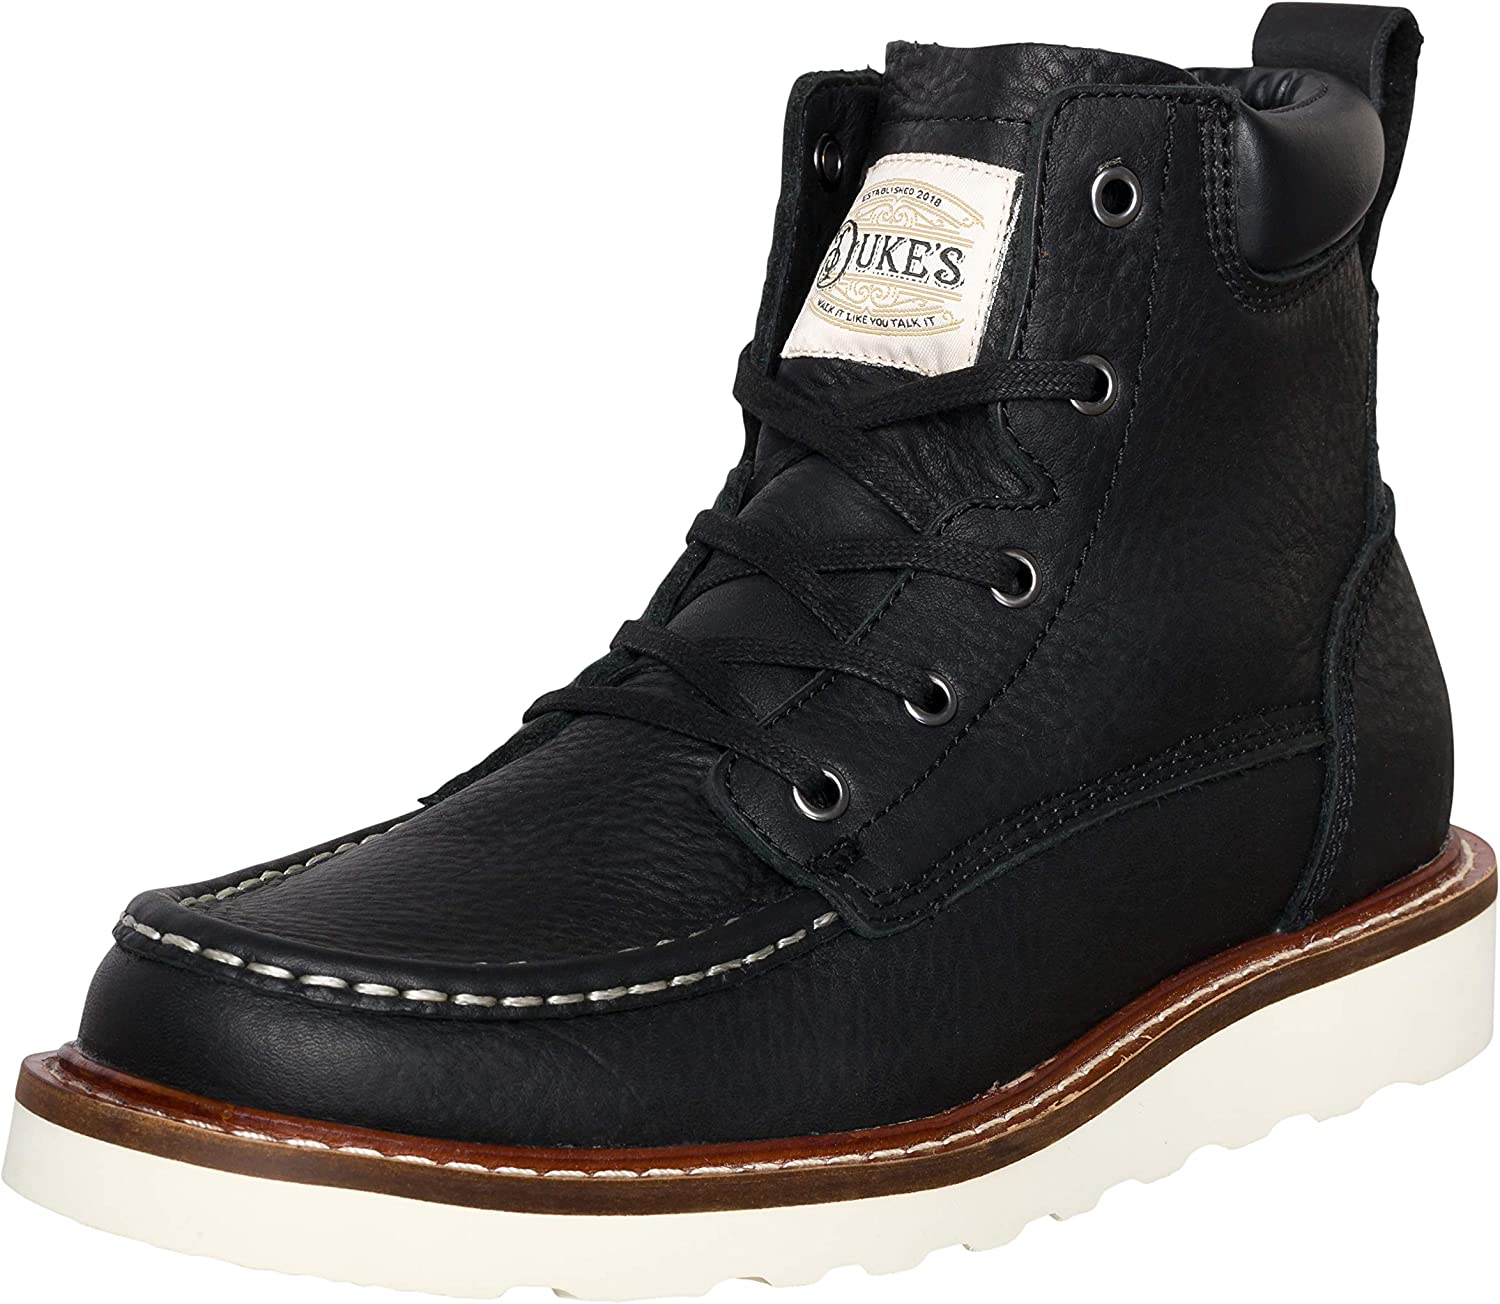 Amazon.com: Duke's Mens Boots - Portland Leather Boot with Premium Cushion  Insole: Shoes